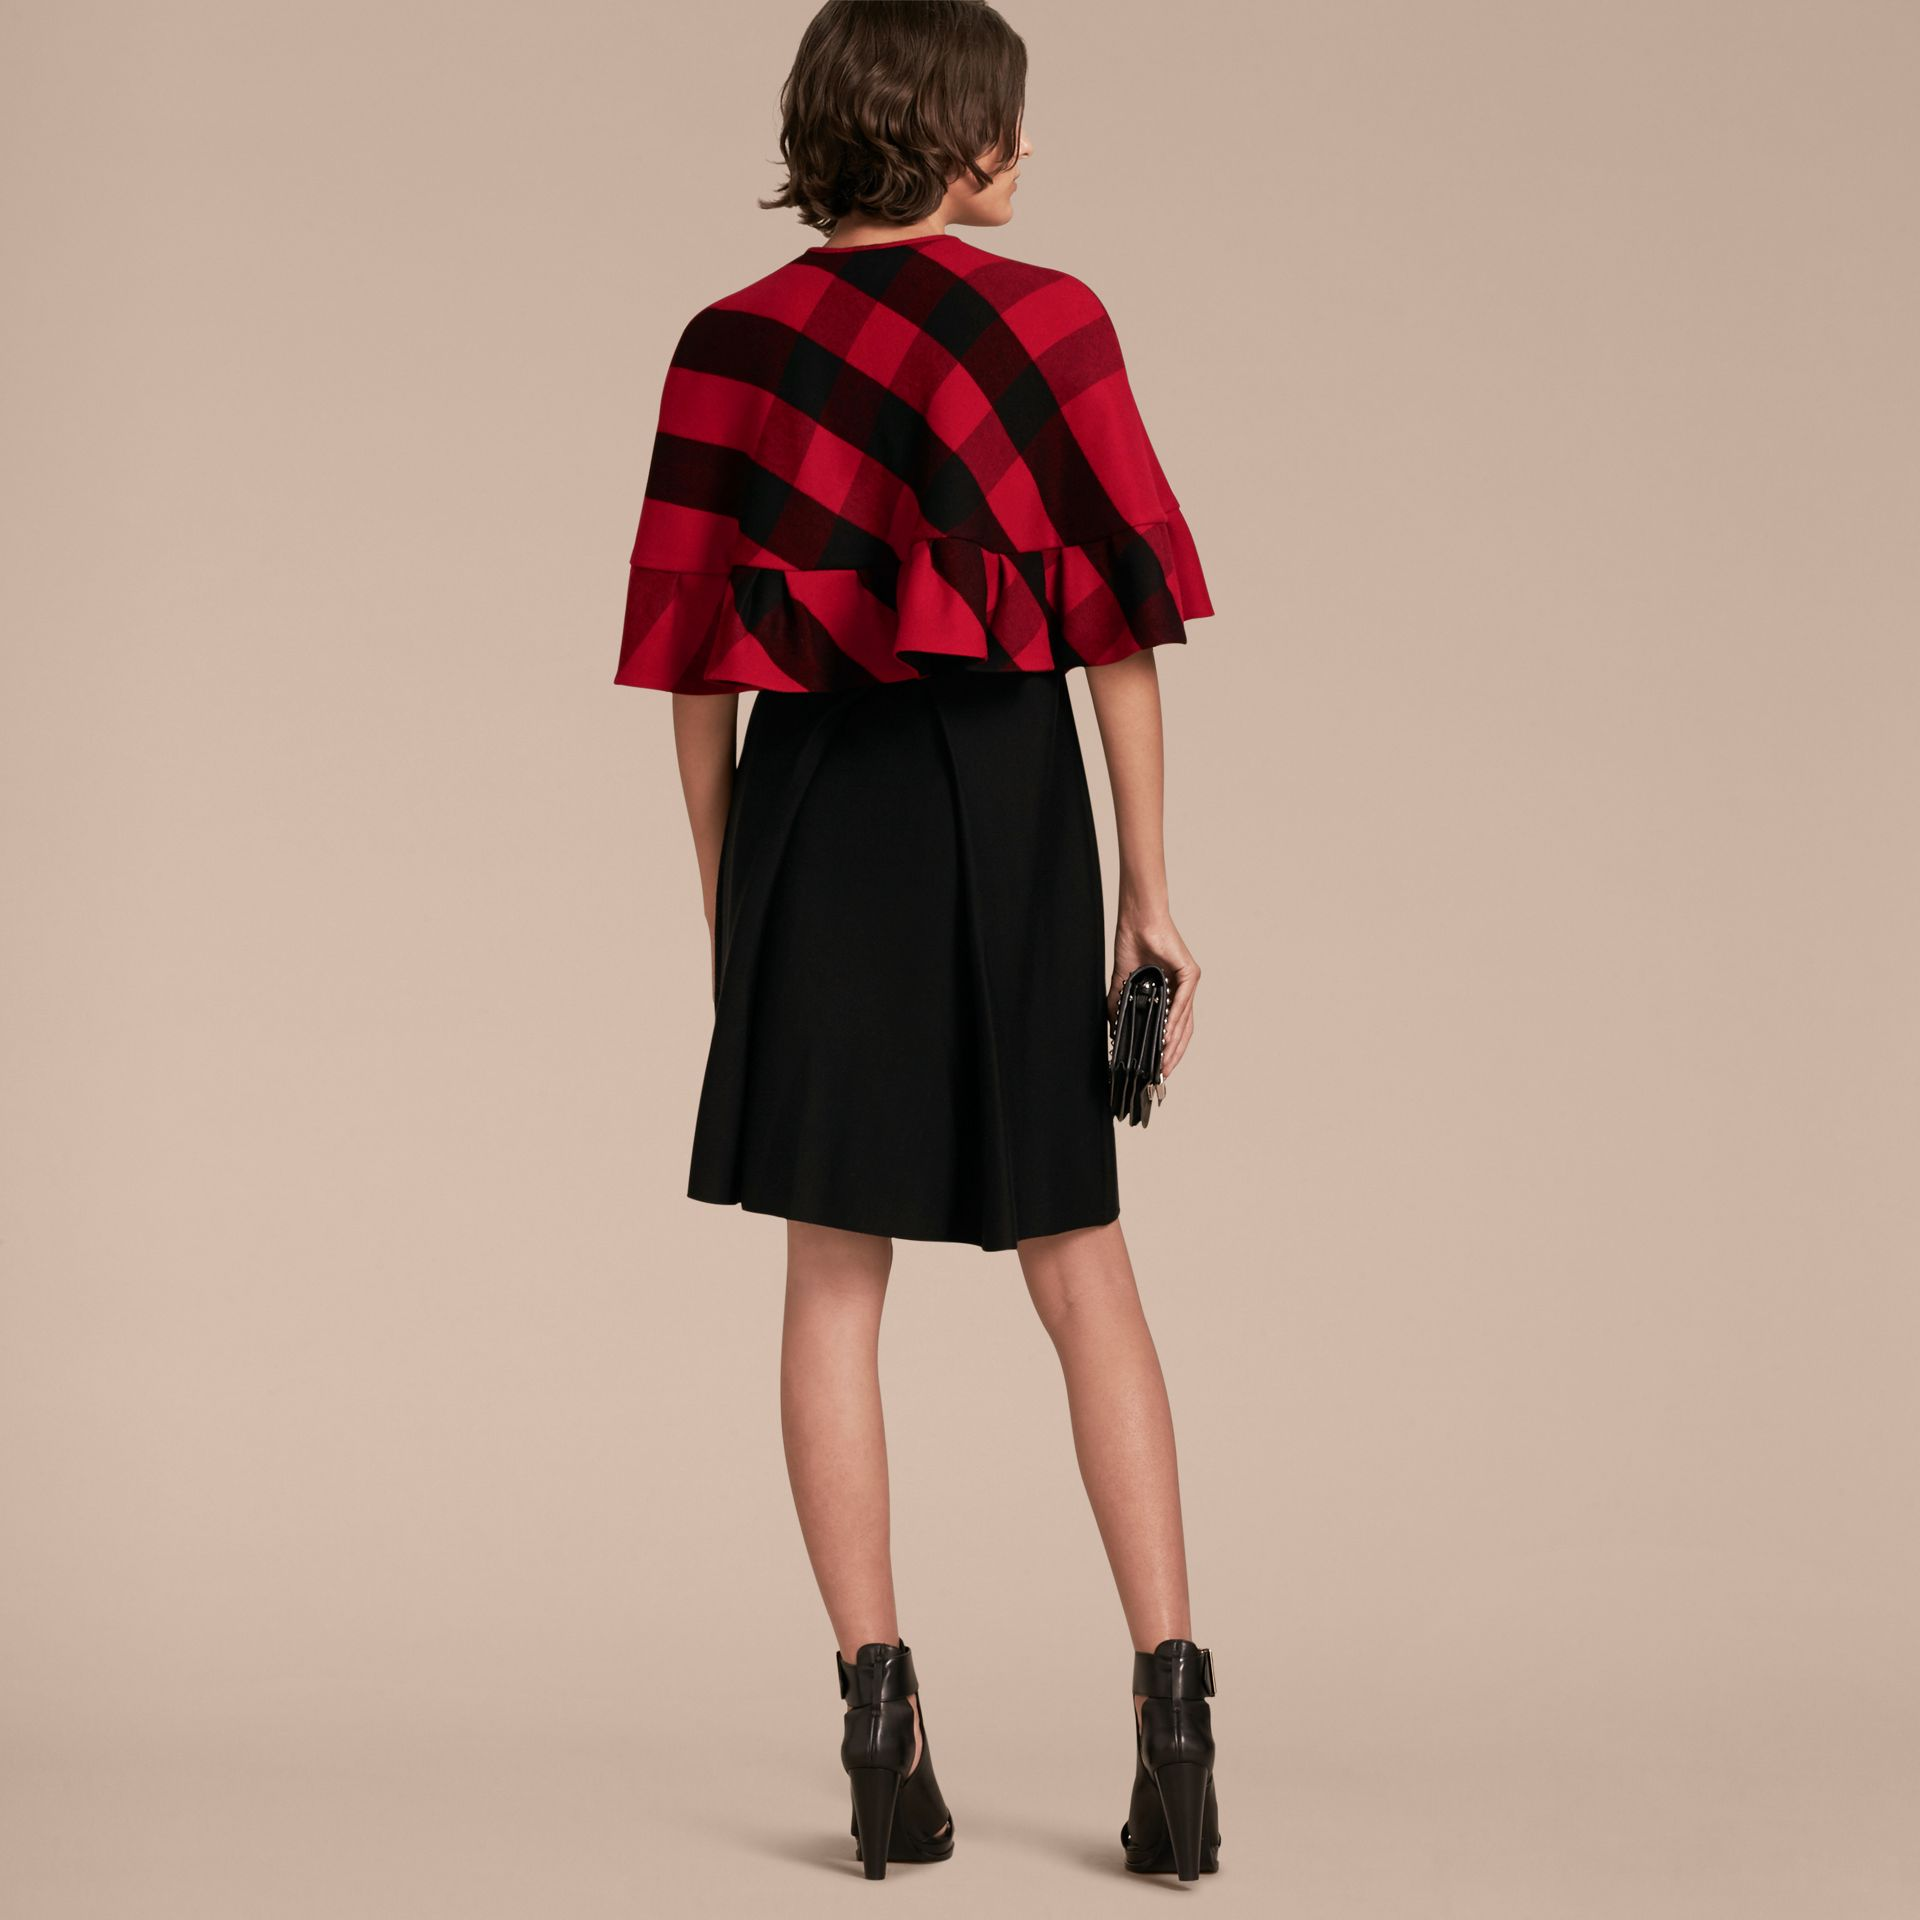 Parade red Ruffled Hem Check Wool Cape Parade Red - gallery image 3